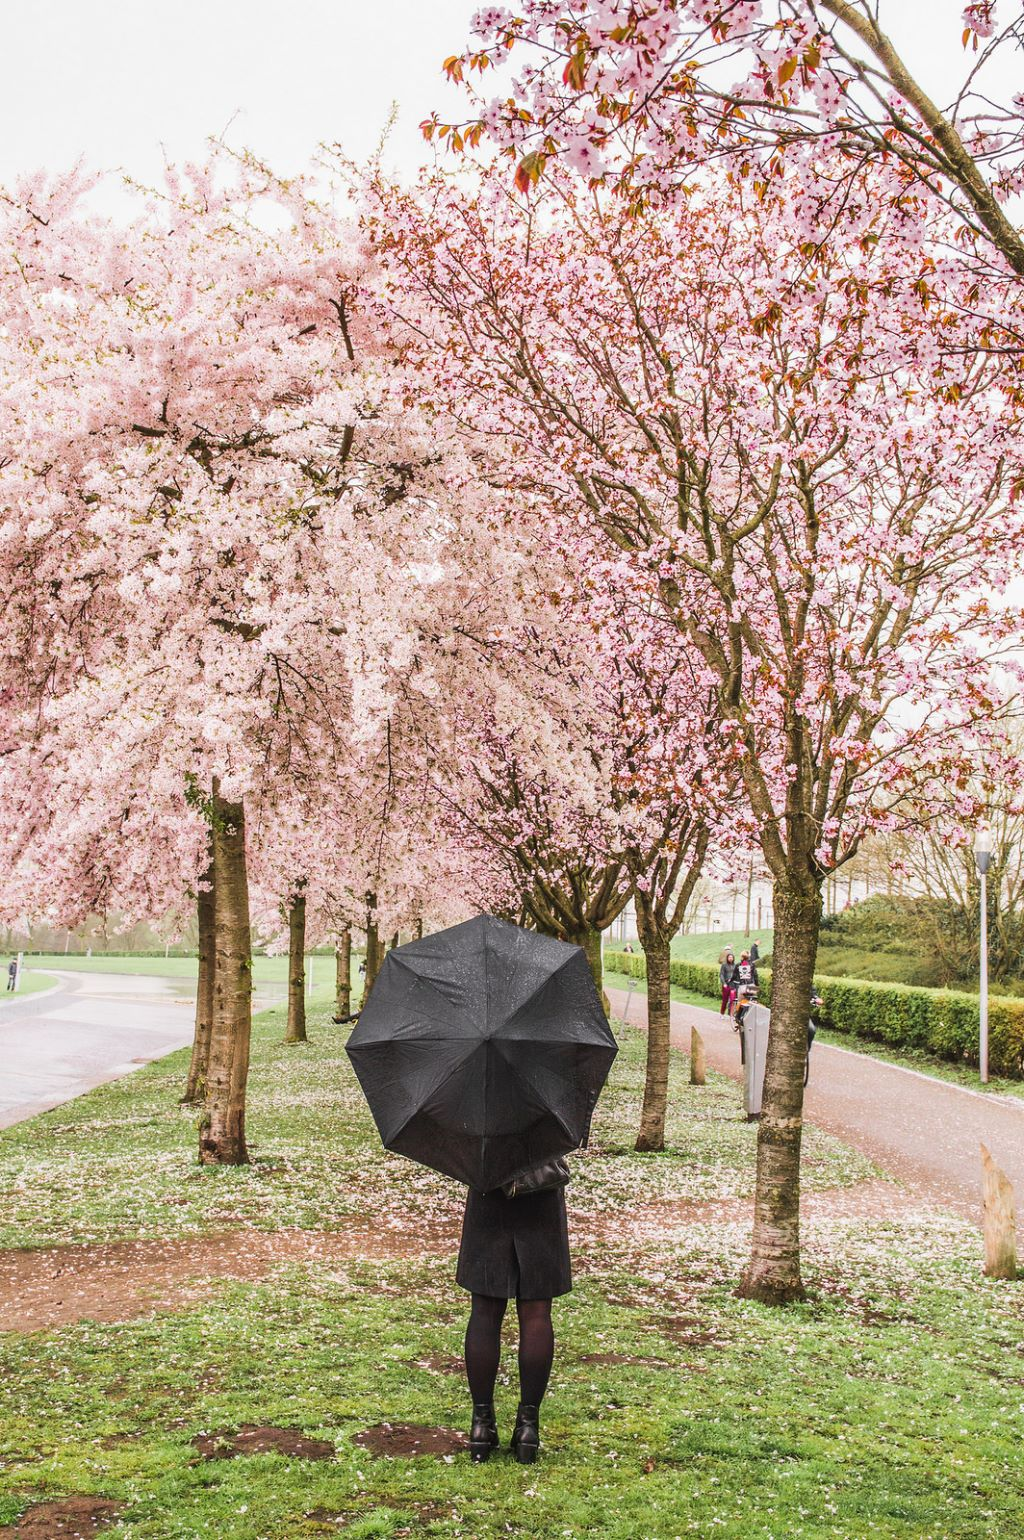 A woman with a black umbrella stands amidst the blossoming trees.